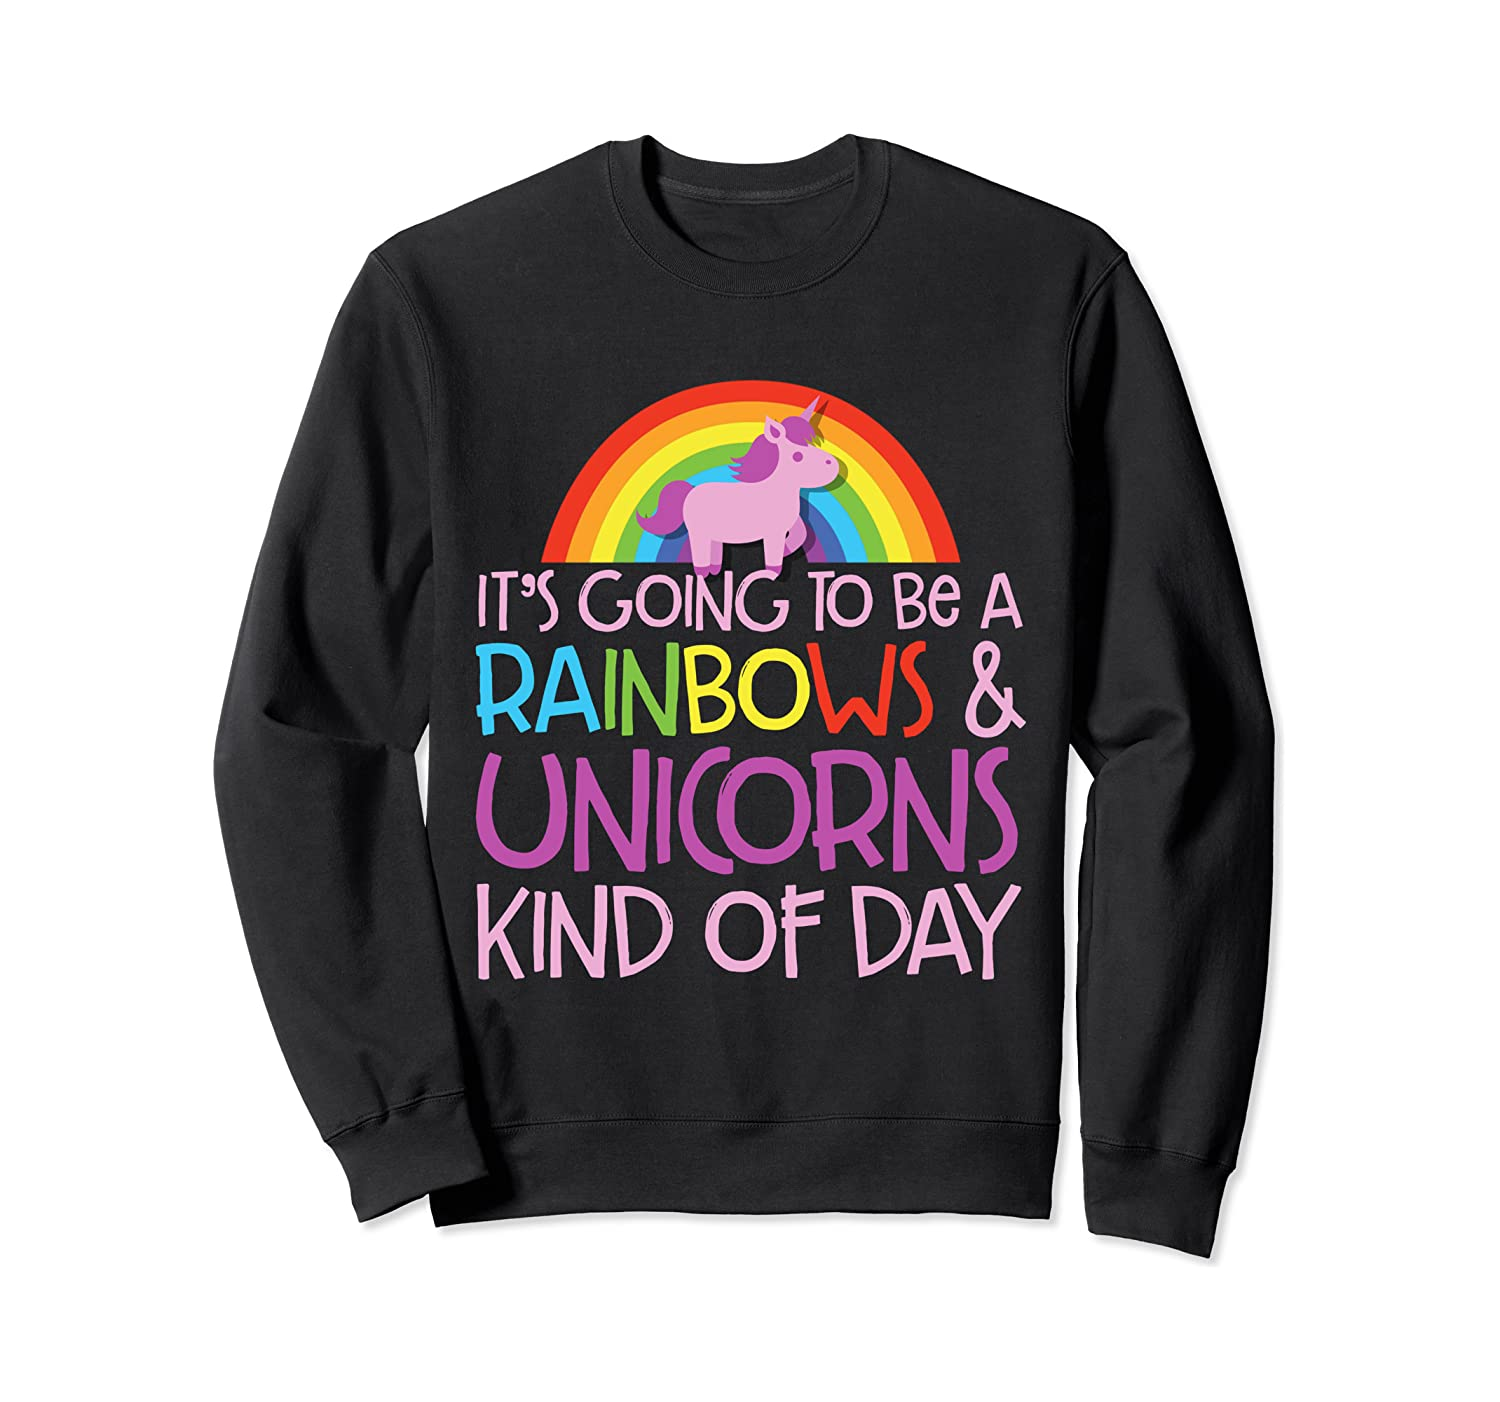 It's Going To Be A Rainbows And Unicorns Kind Of Day Funny Sweatshirt